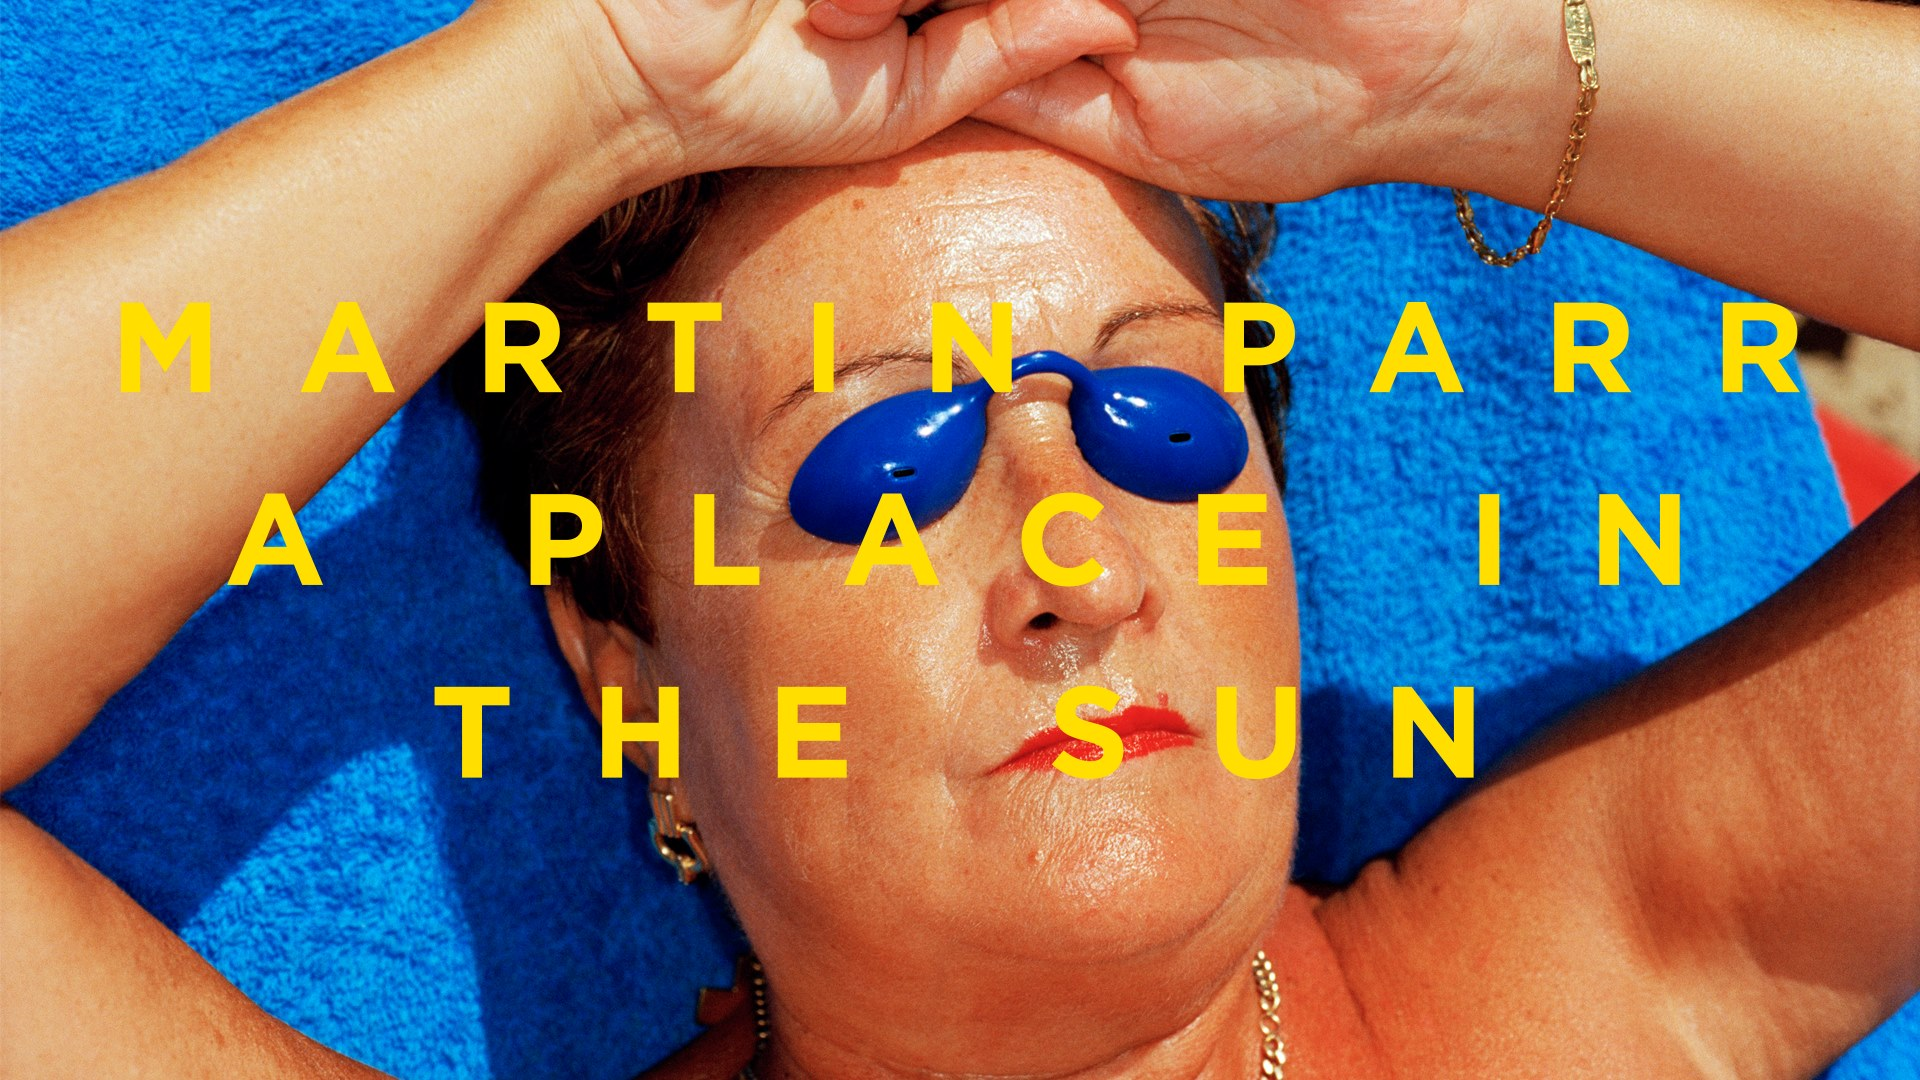 MArtin Parr - A place in the sun